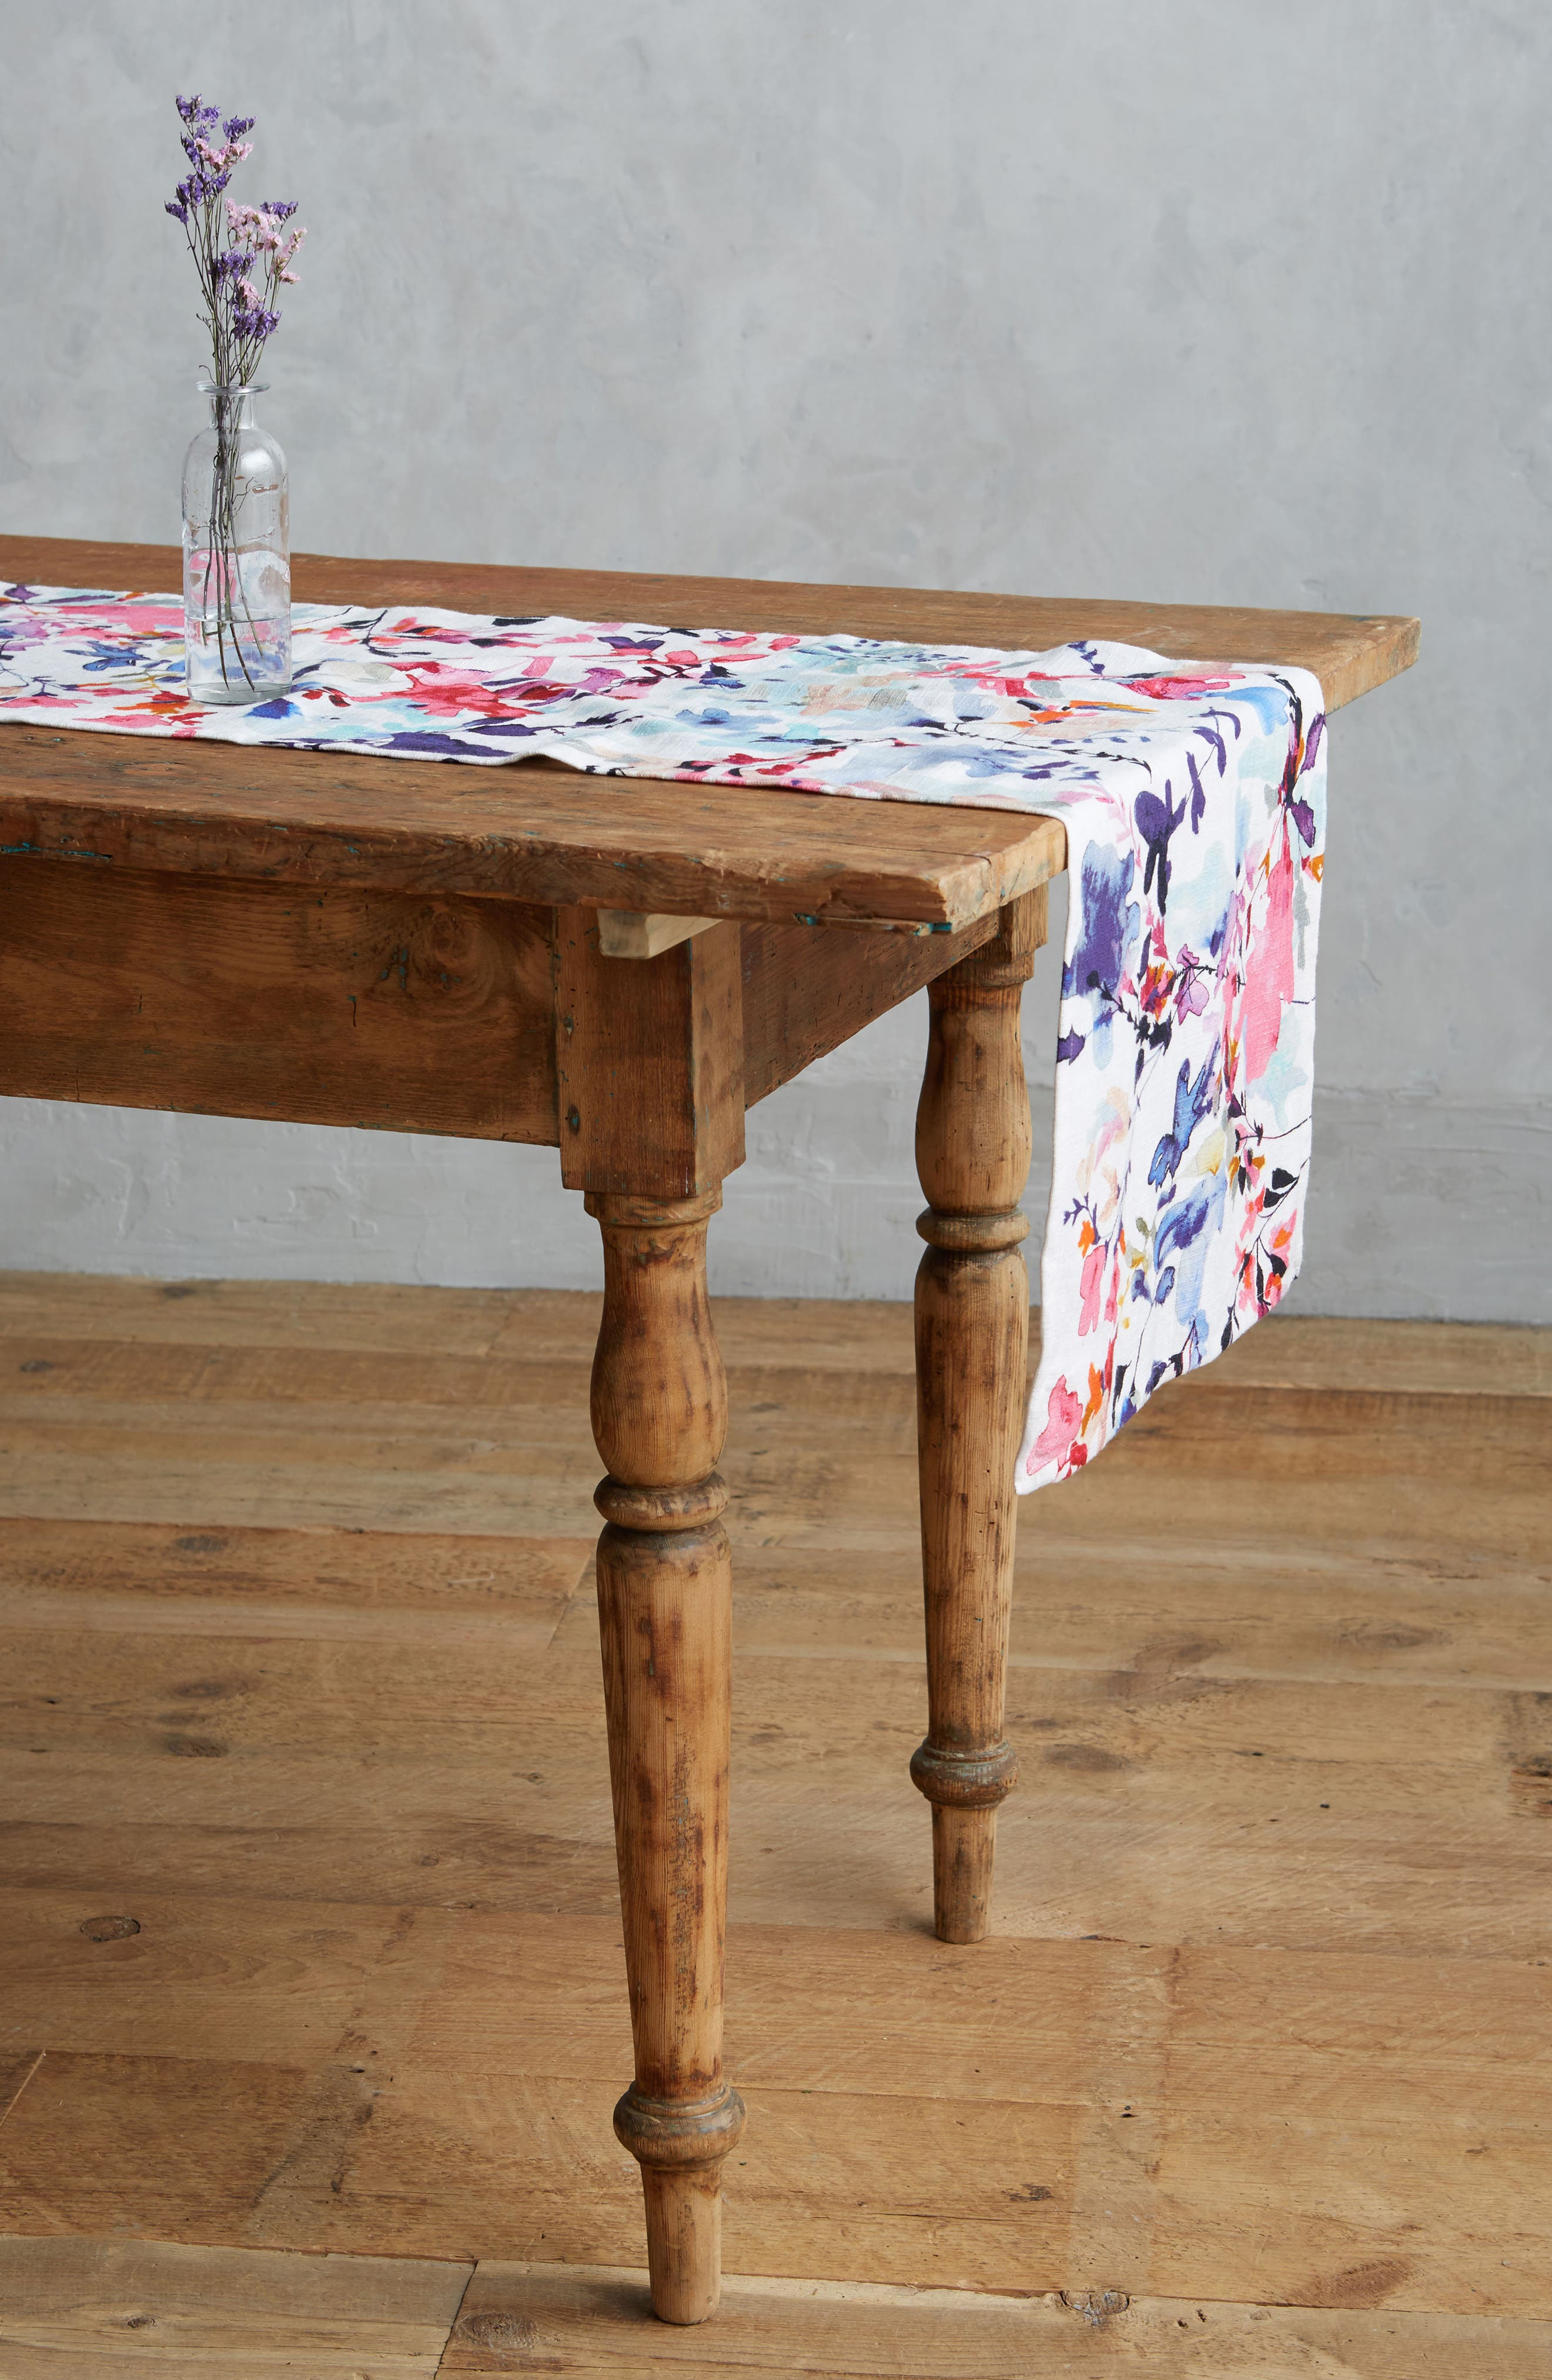 Wildflower Study Table Runner,                             Main thumbnail 1, color,                             Pink Multi